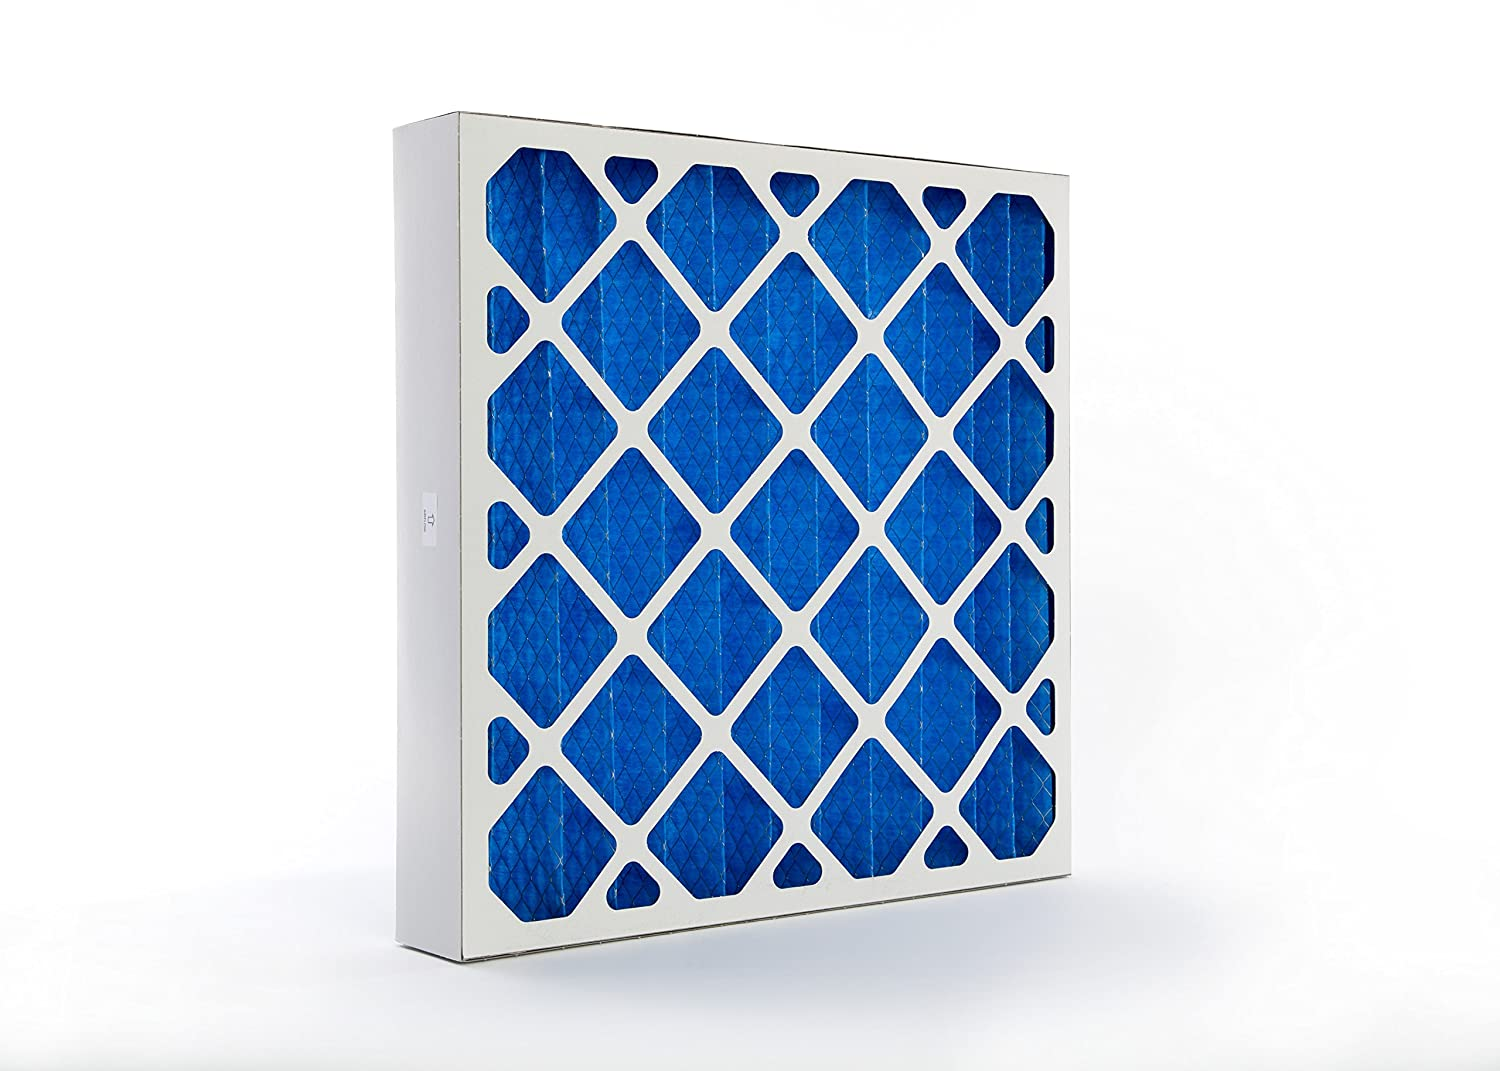 GVS Filter Technology G4P.15.15.2.SUA001.002 G4 Pleated Panel Filter, Blue/White (Pack of 2)